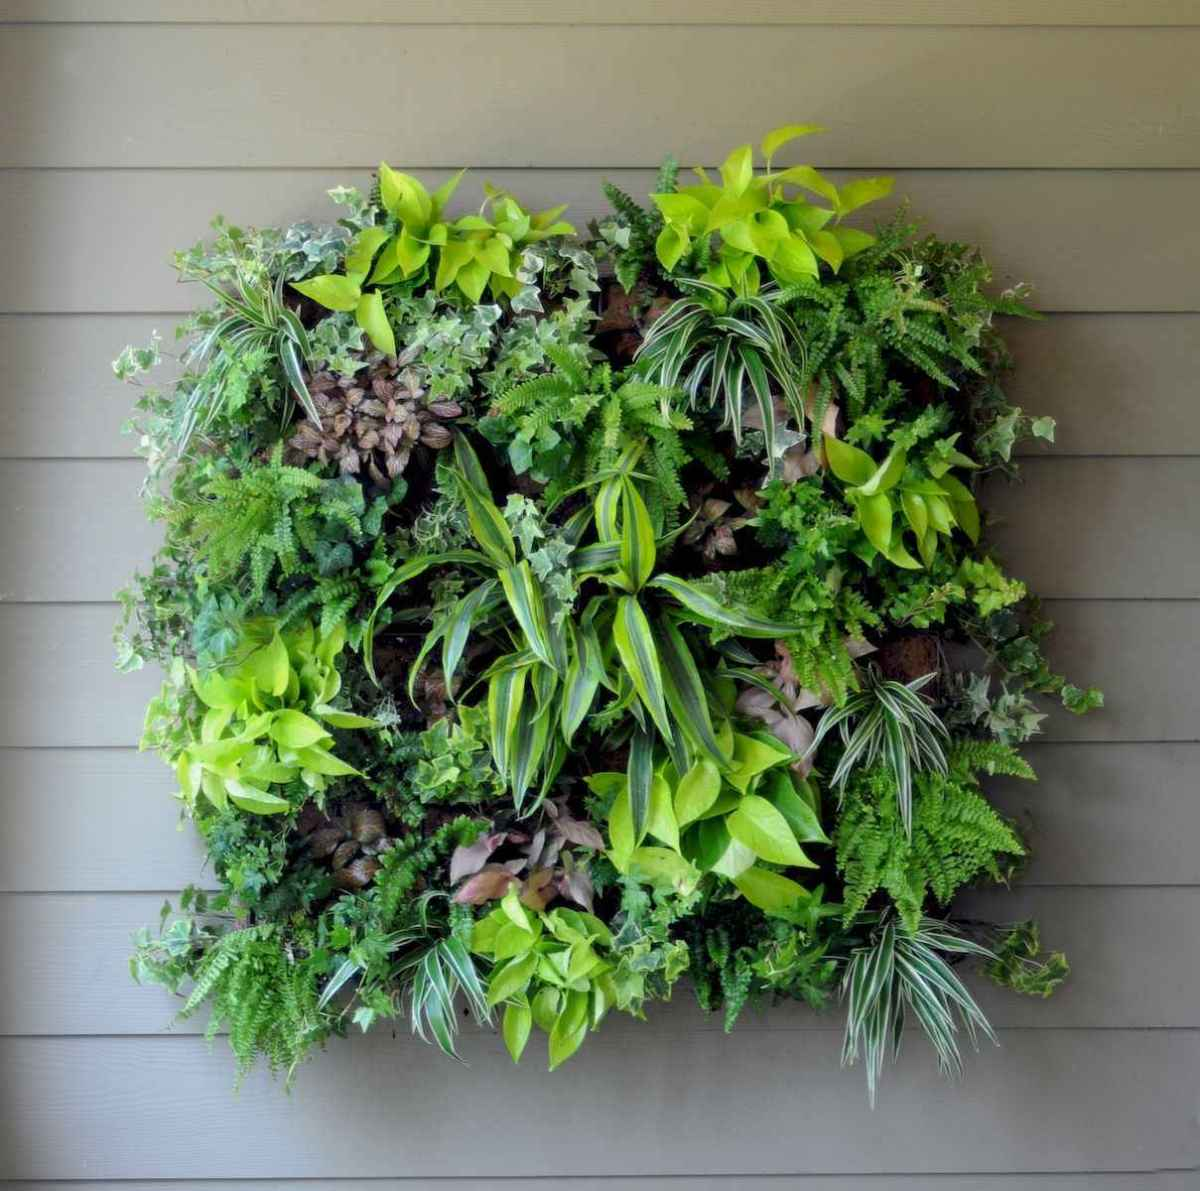 40 beautiful living wall planter garden ideas decorations and remodel (6)